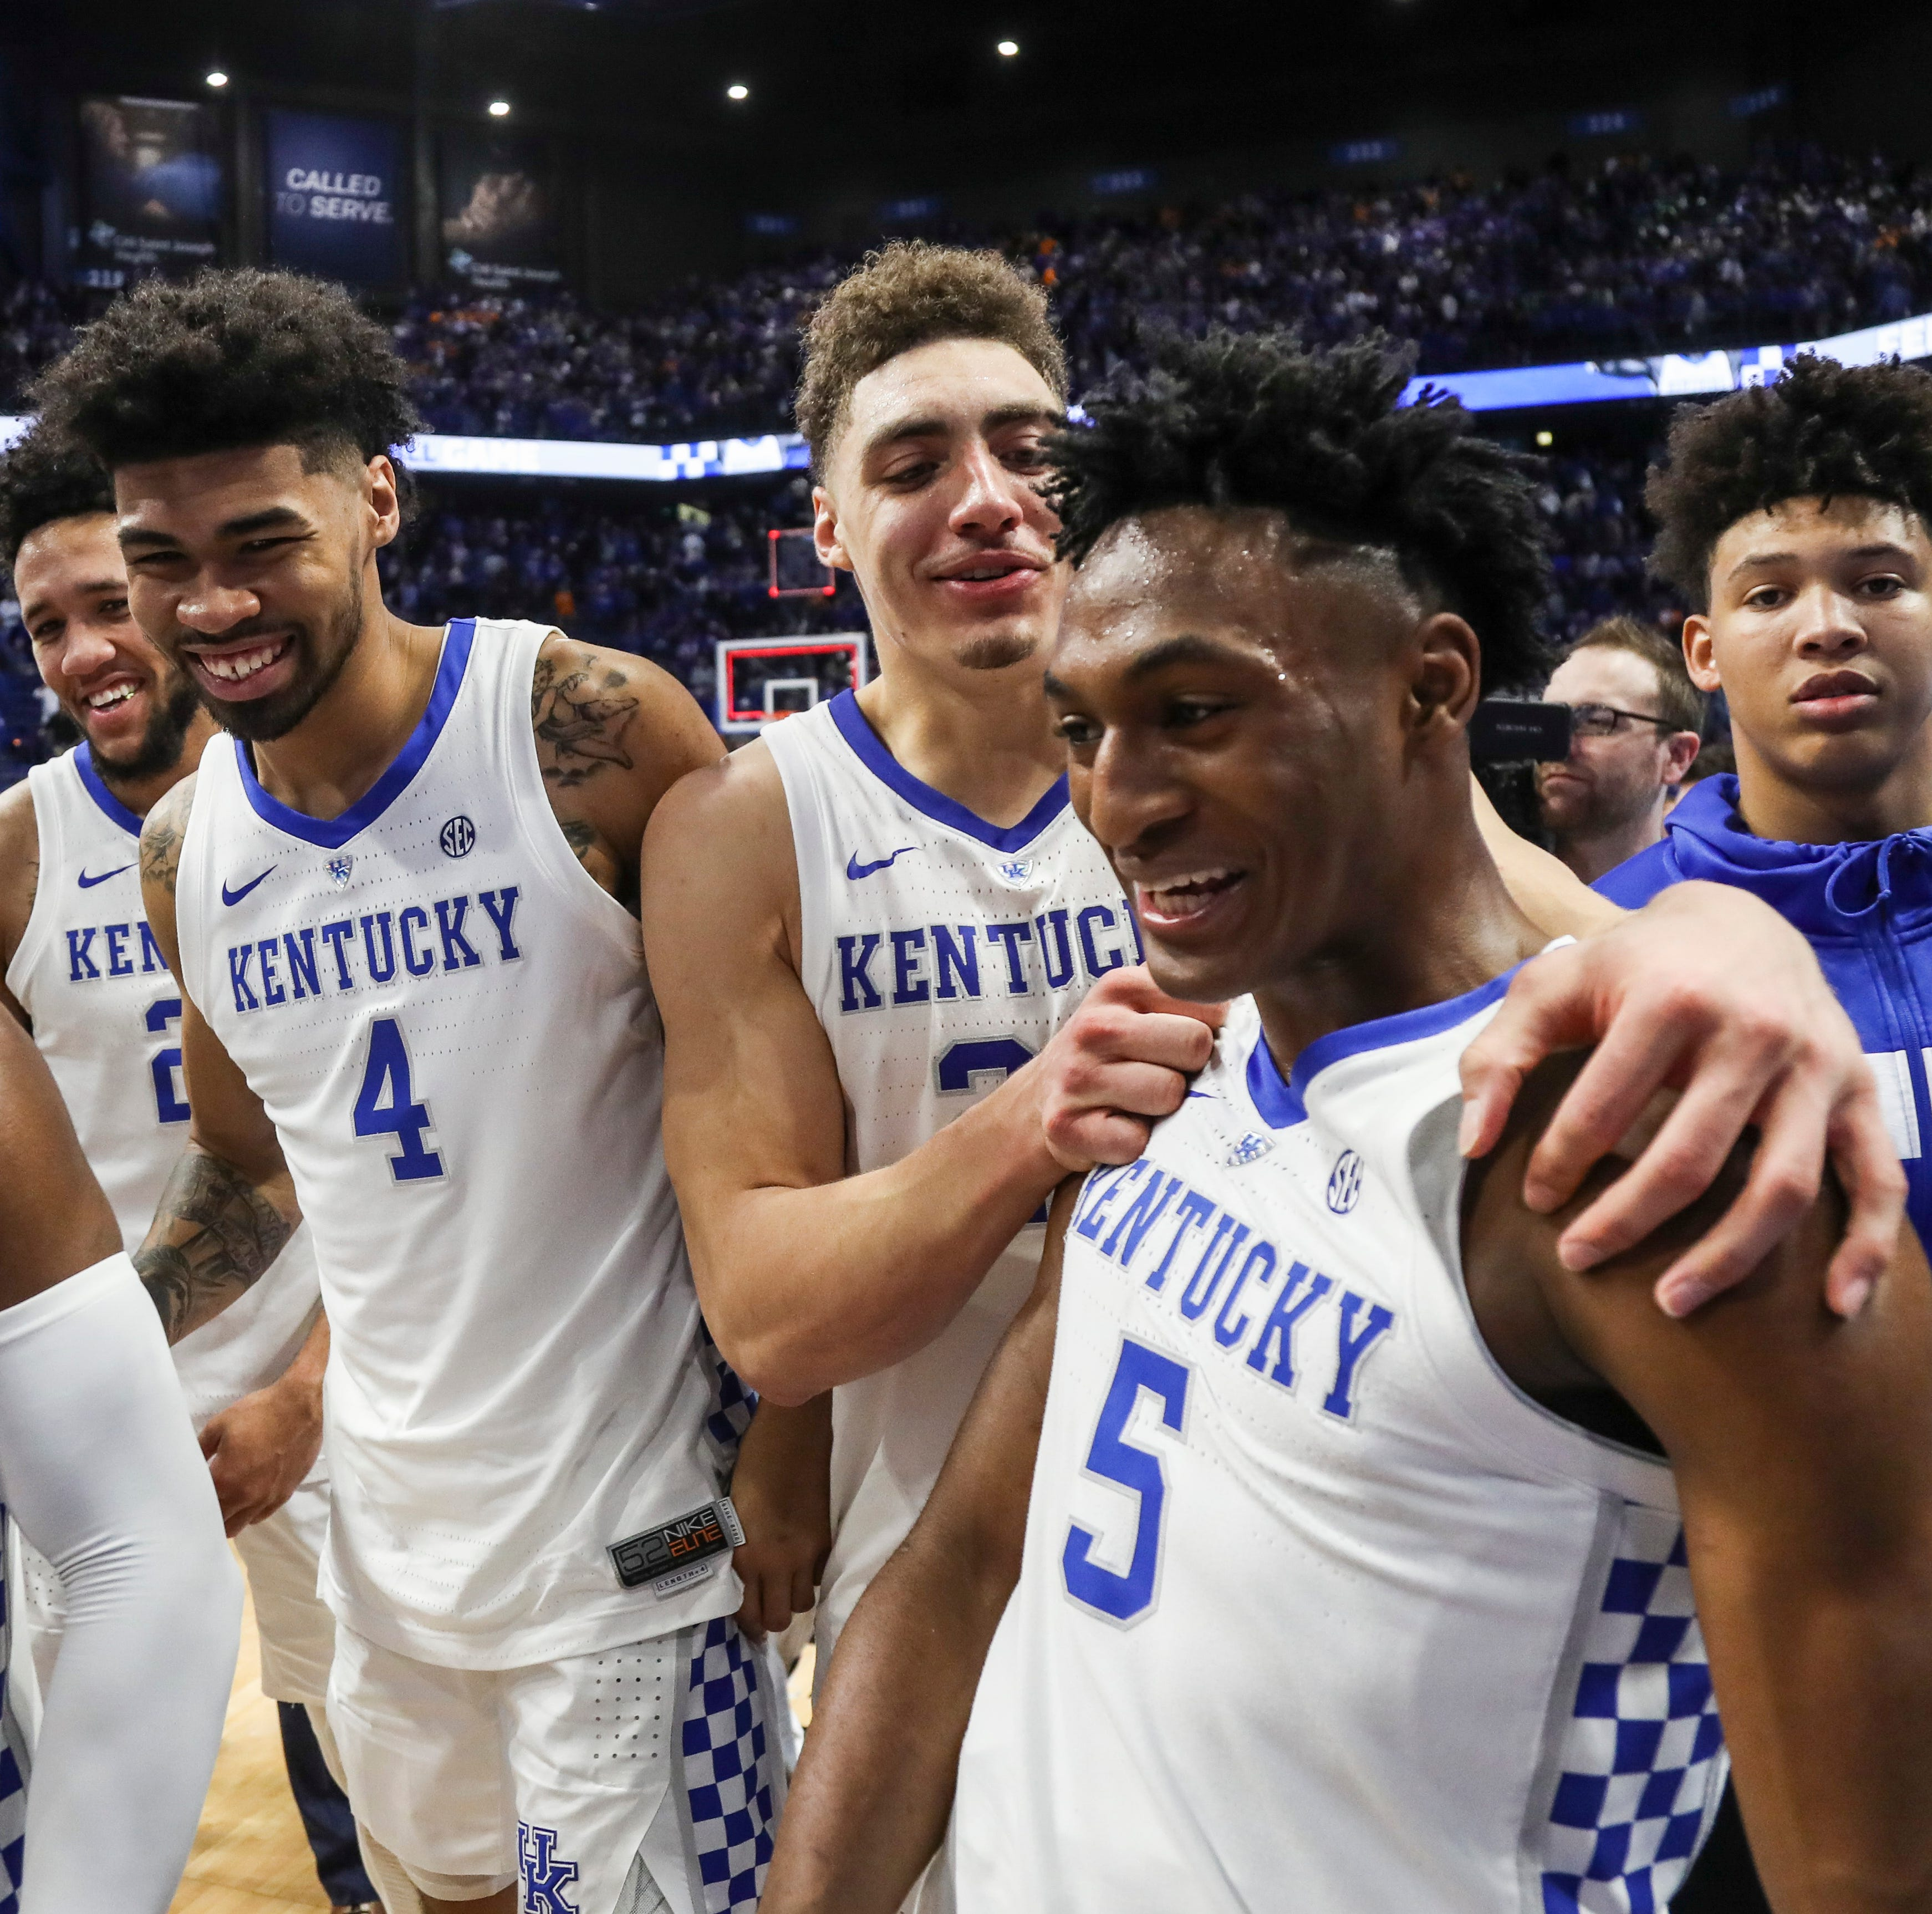 Kentucky basketball's team was supposed to be among the best. Now it is